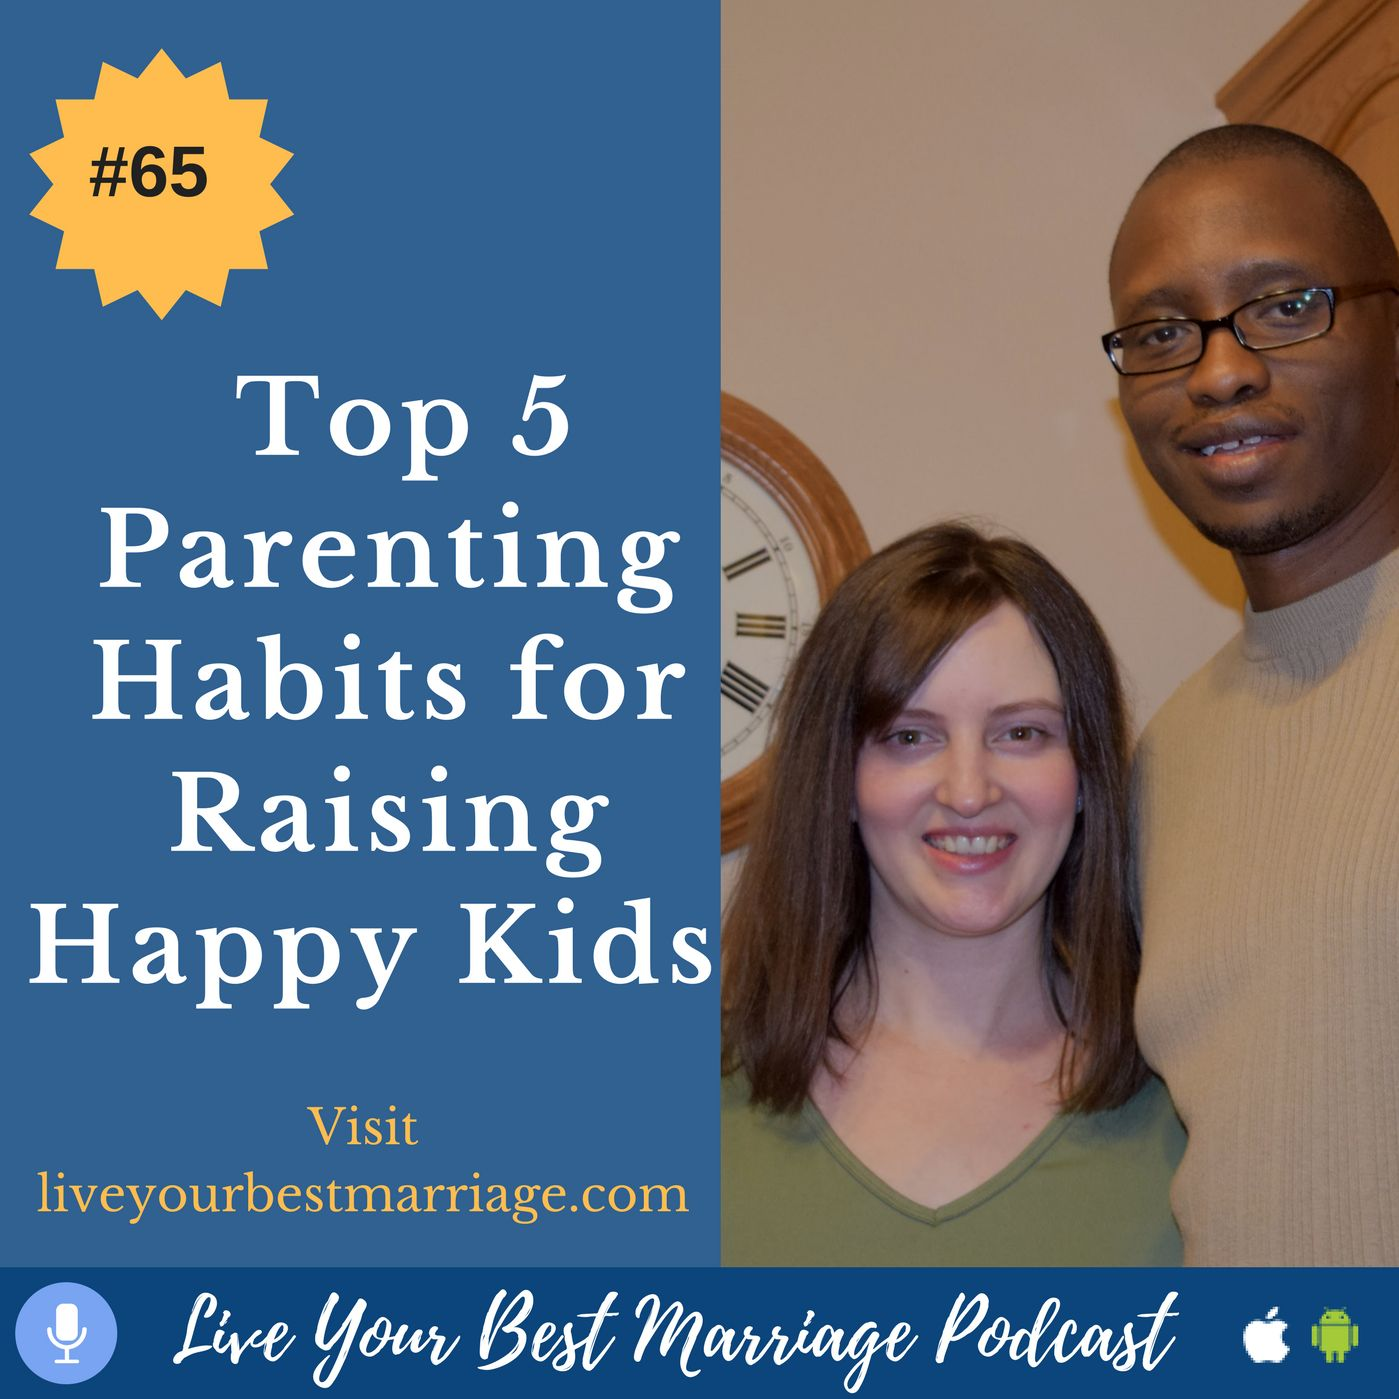 episode-65-top-5-parenting-habits-for-raising-happy-kids_thumbnail.png